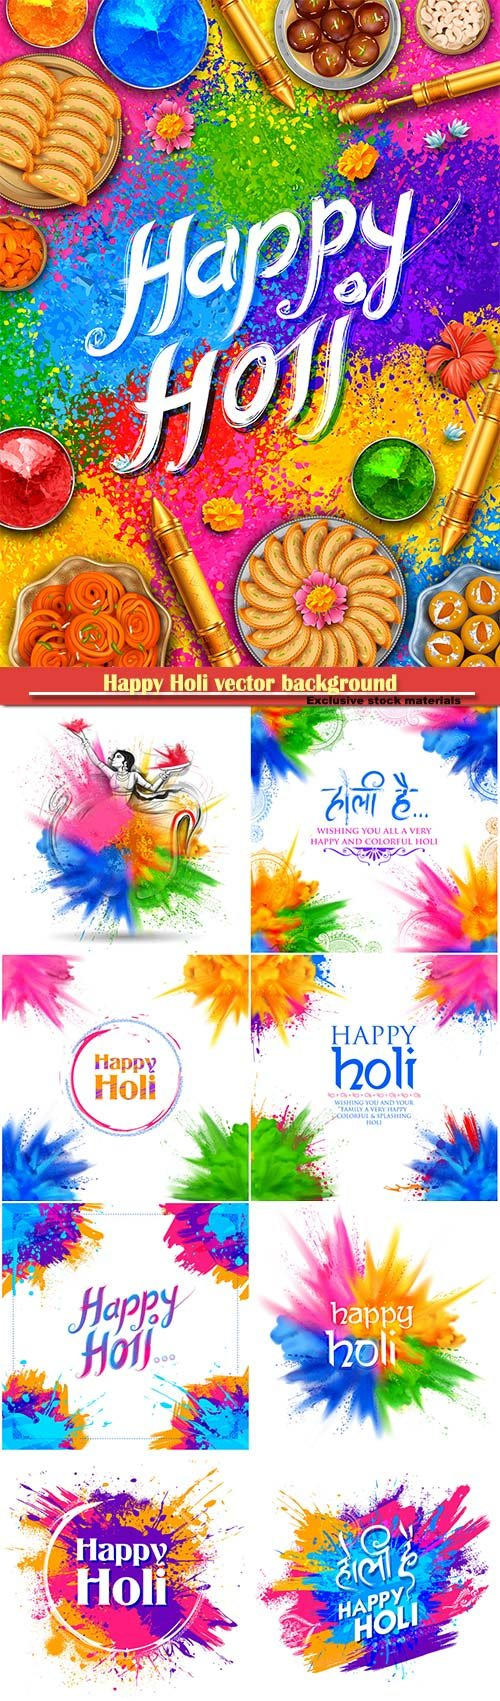 Happy Holi vector background abstract colorful illustration